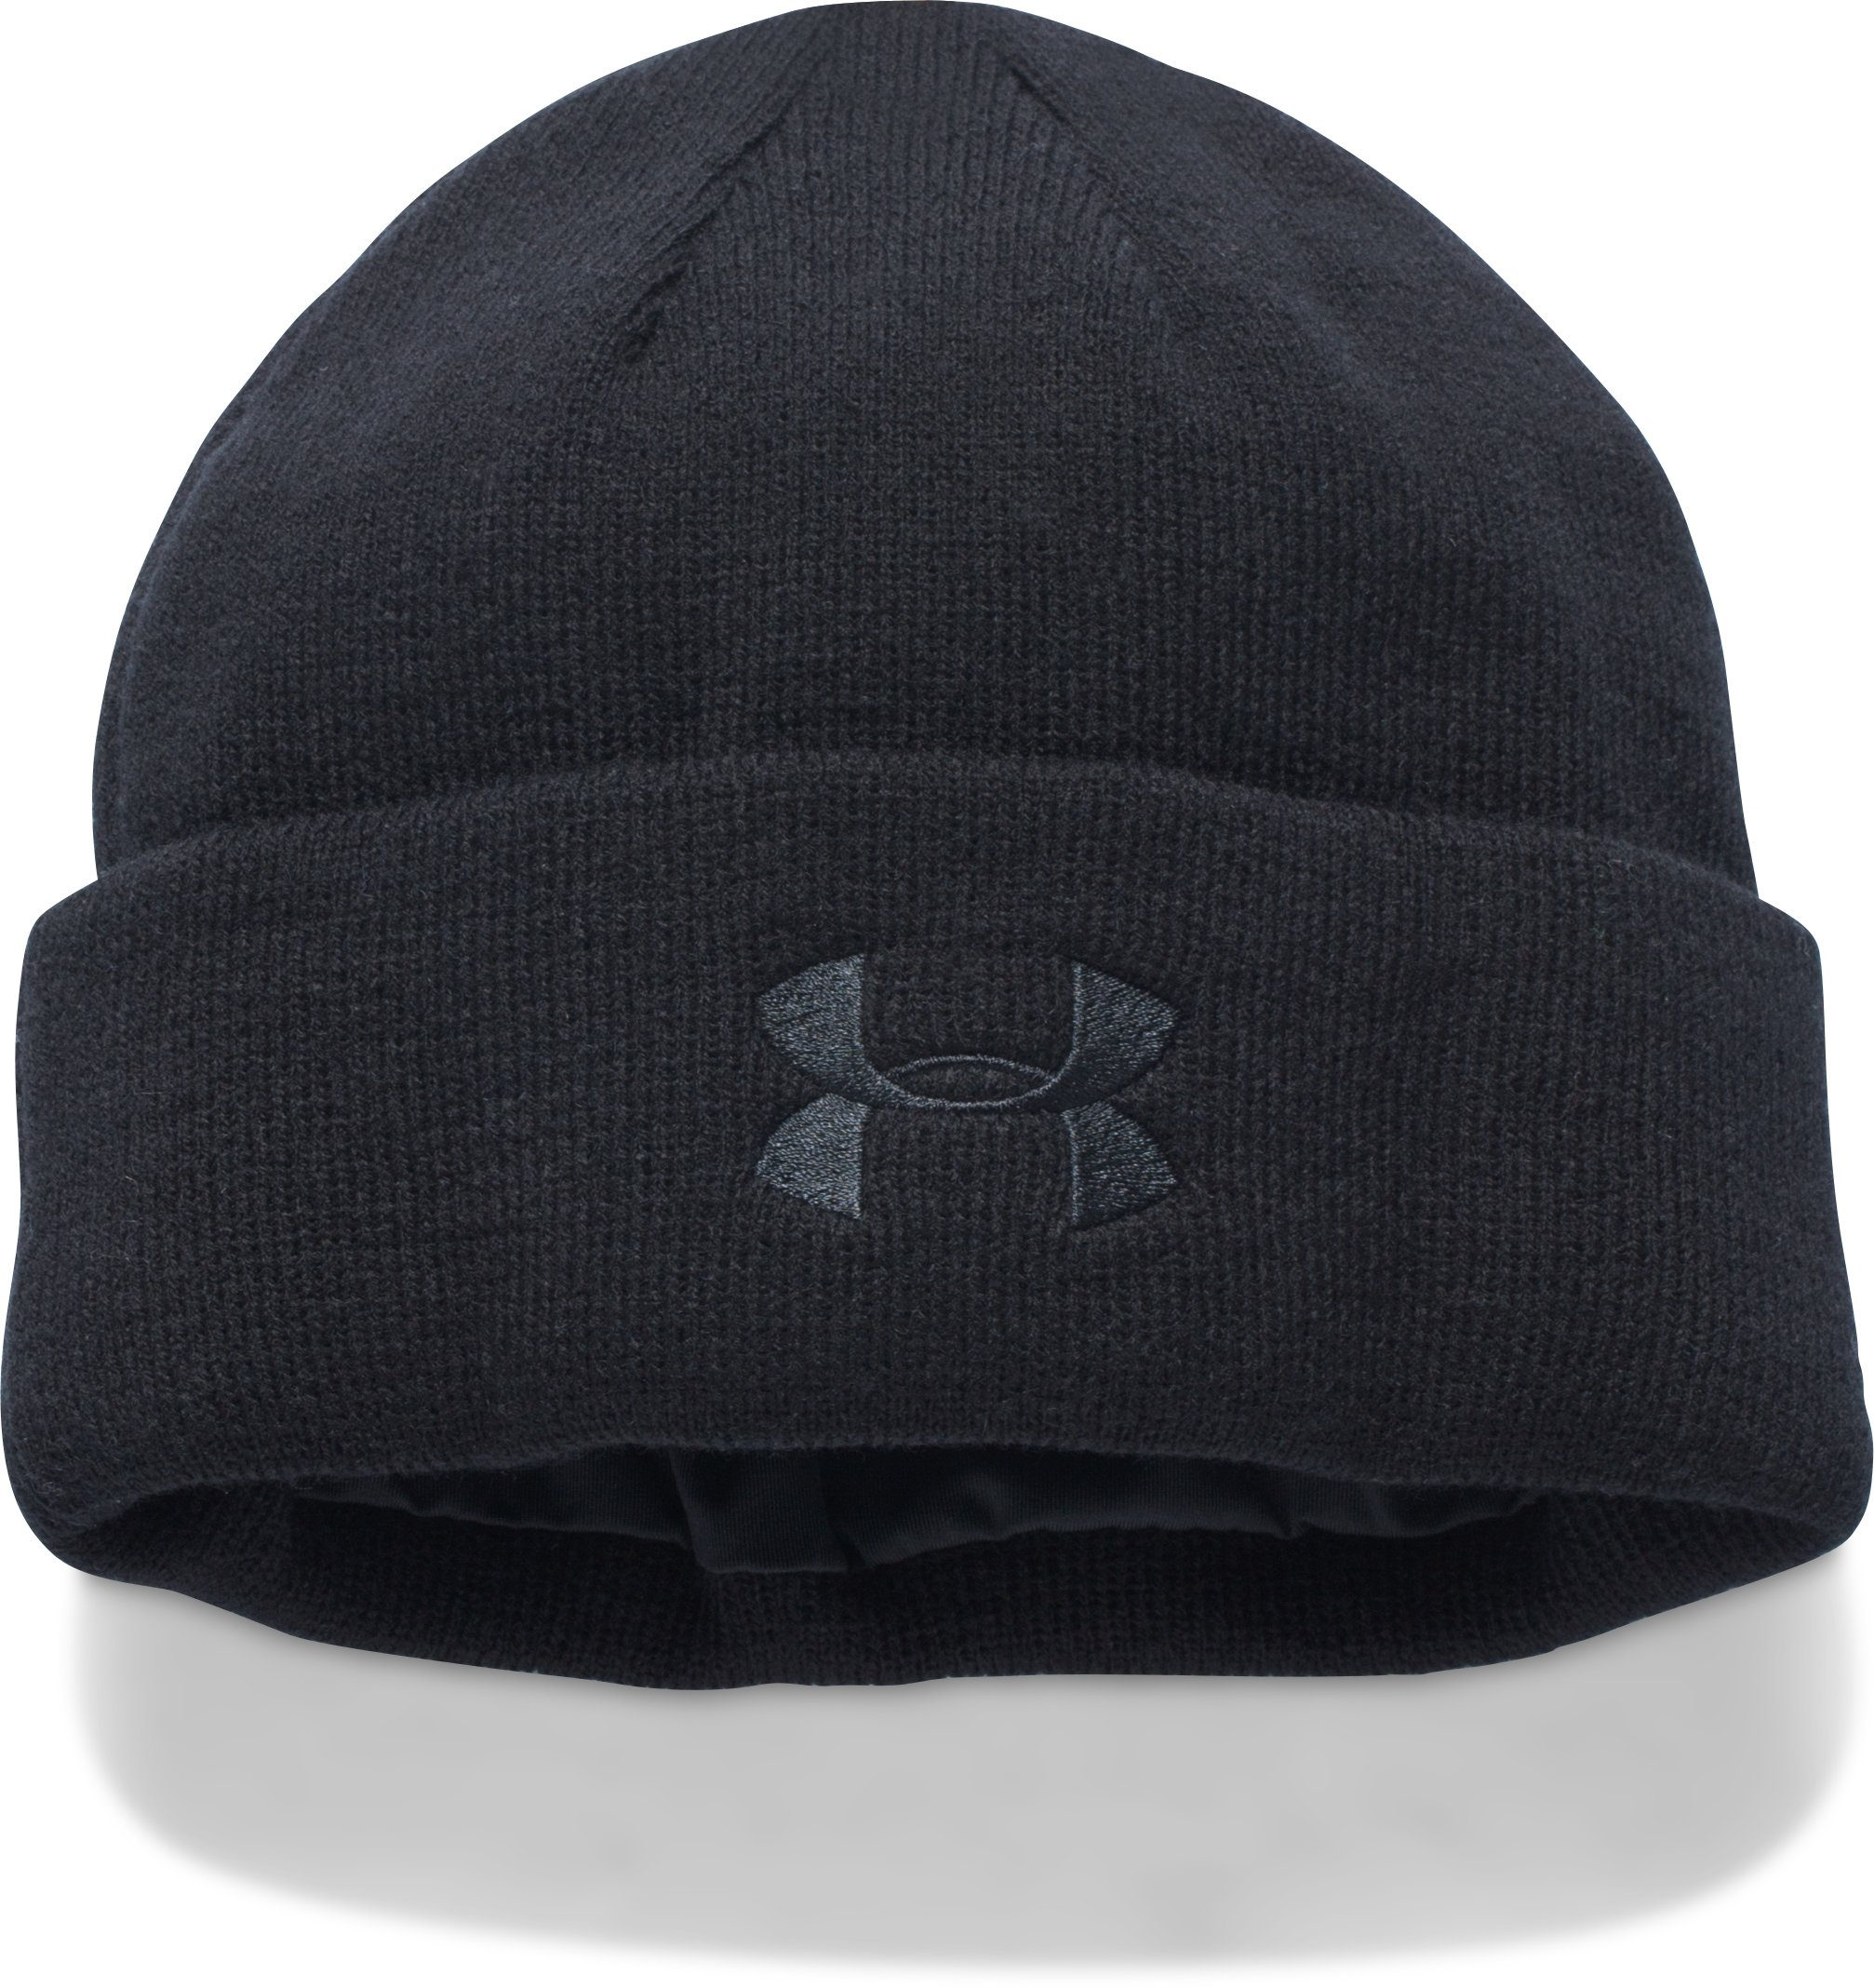 Men's Tactical Stealth Beanie, Black